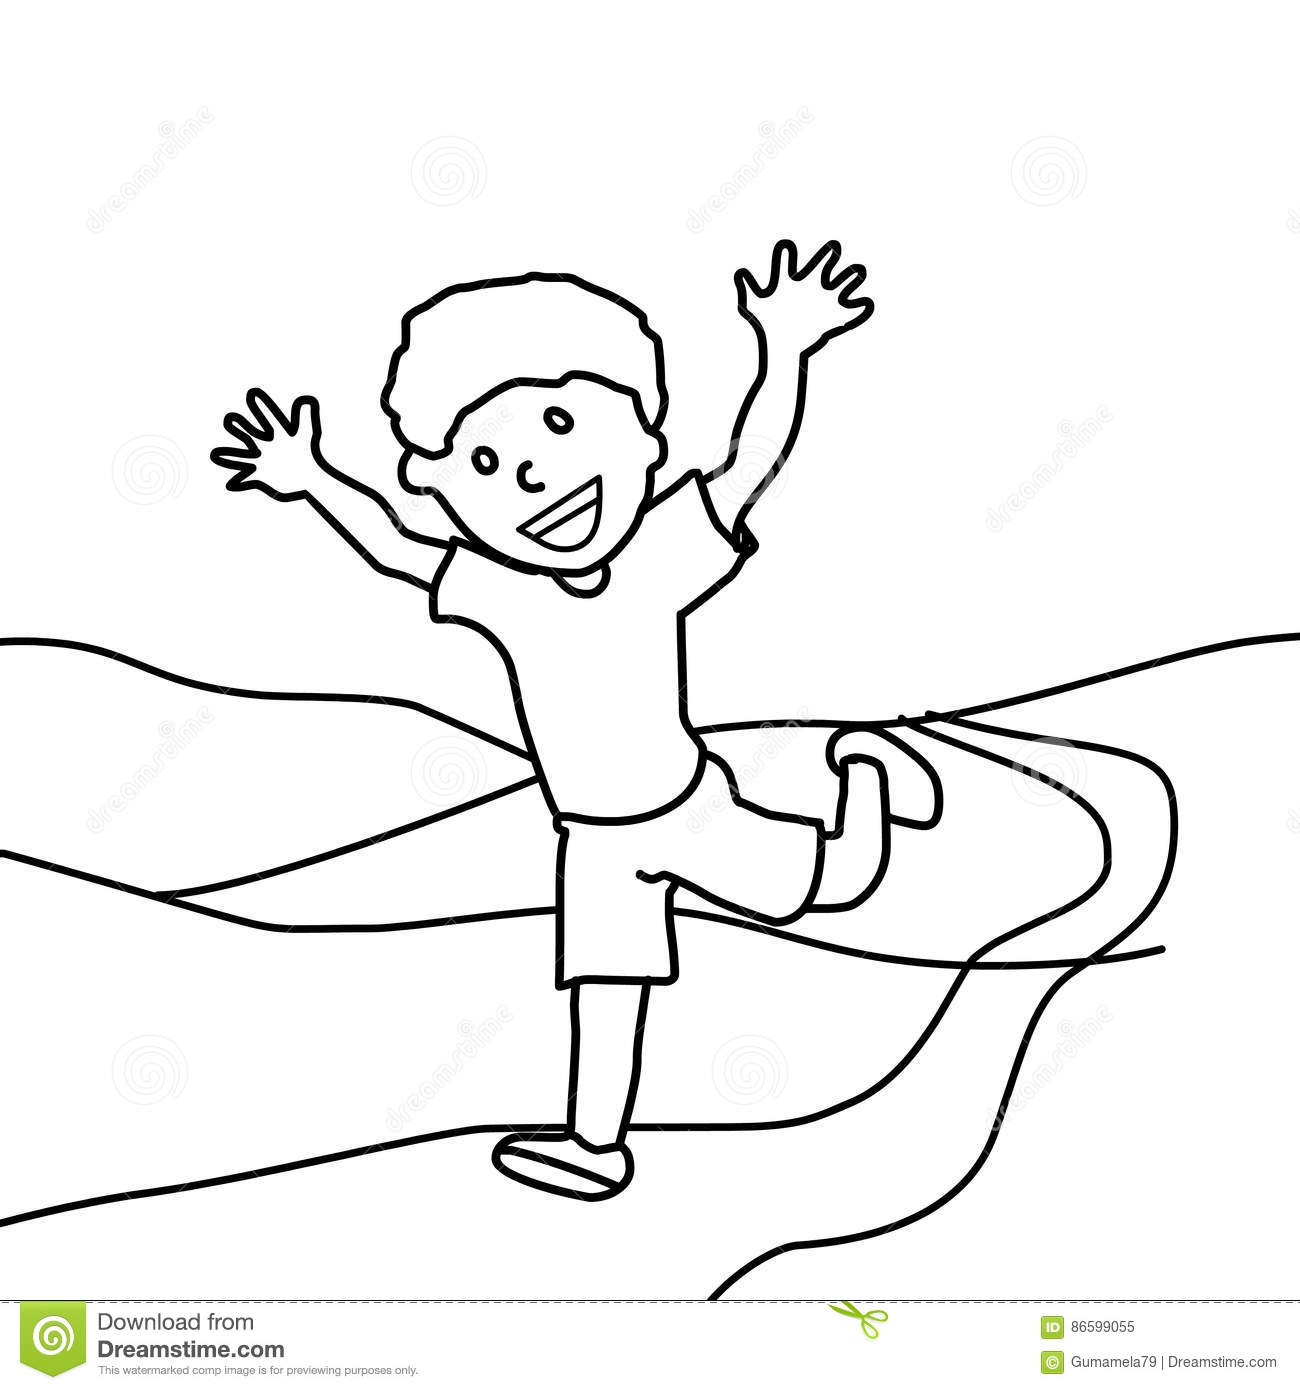 boy running coloring page happy boy running coloring page stock illustration page boy coloring running